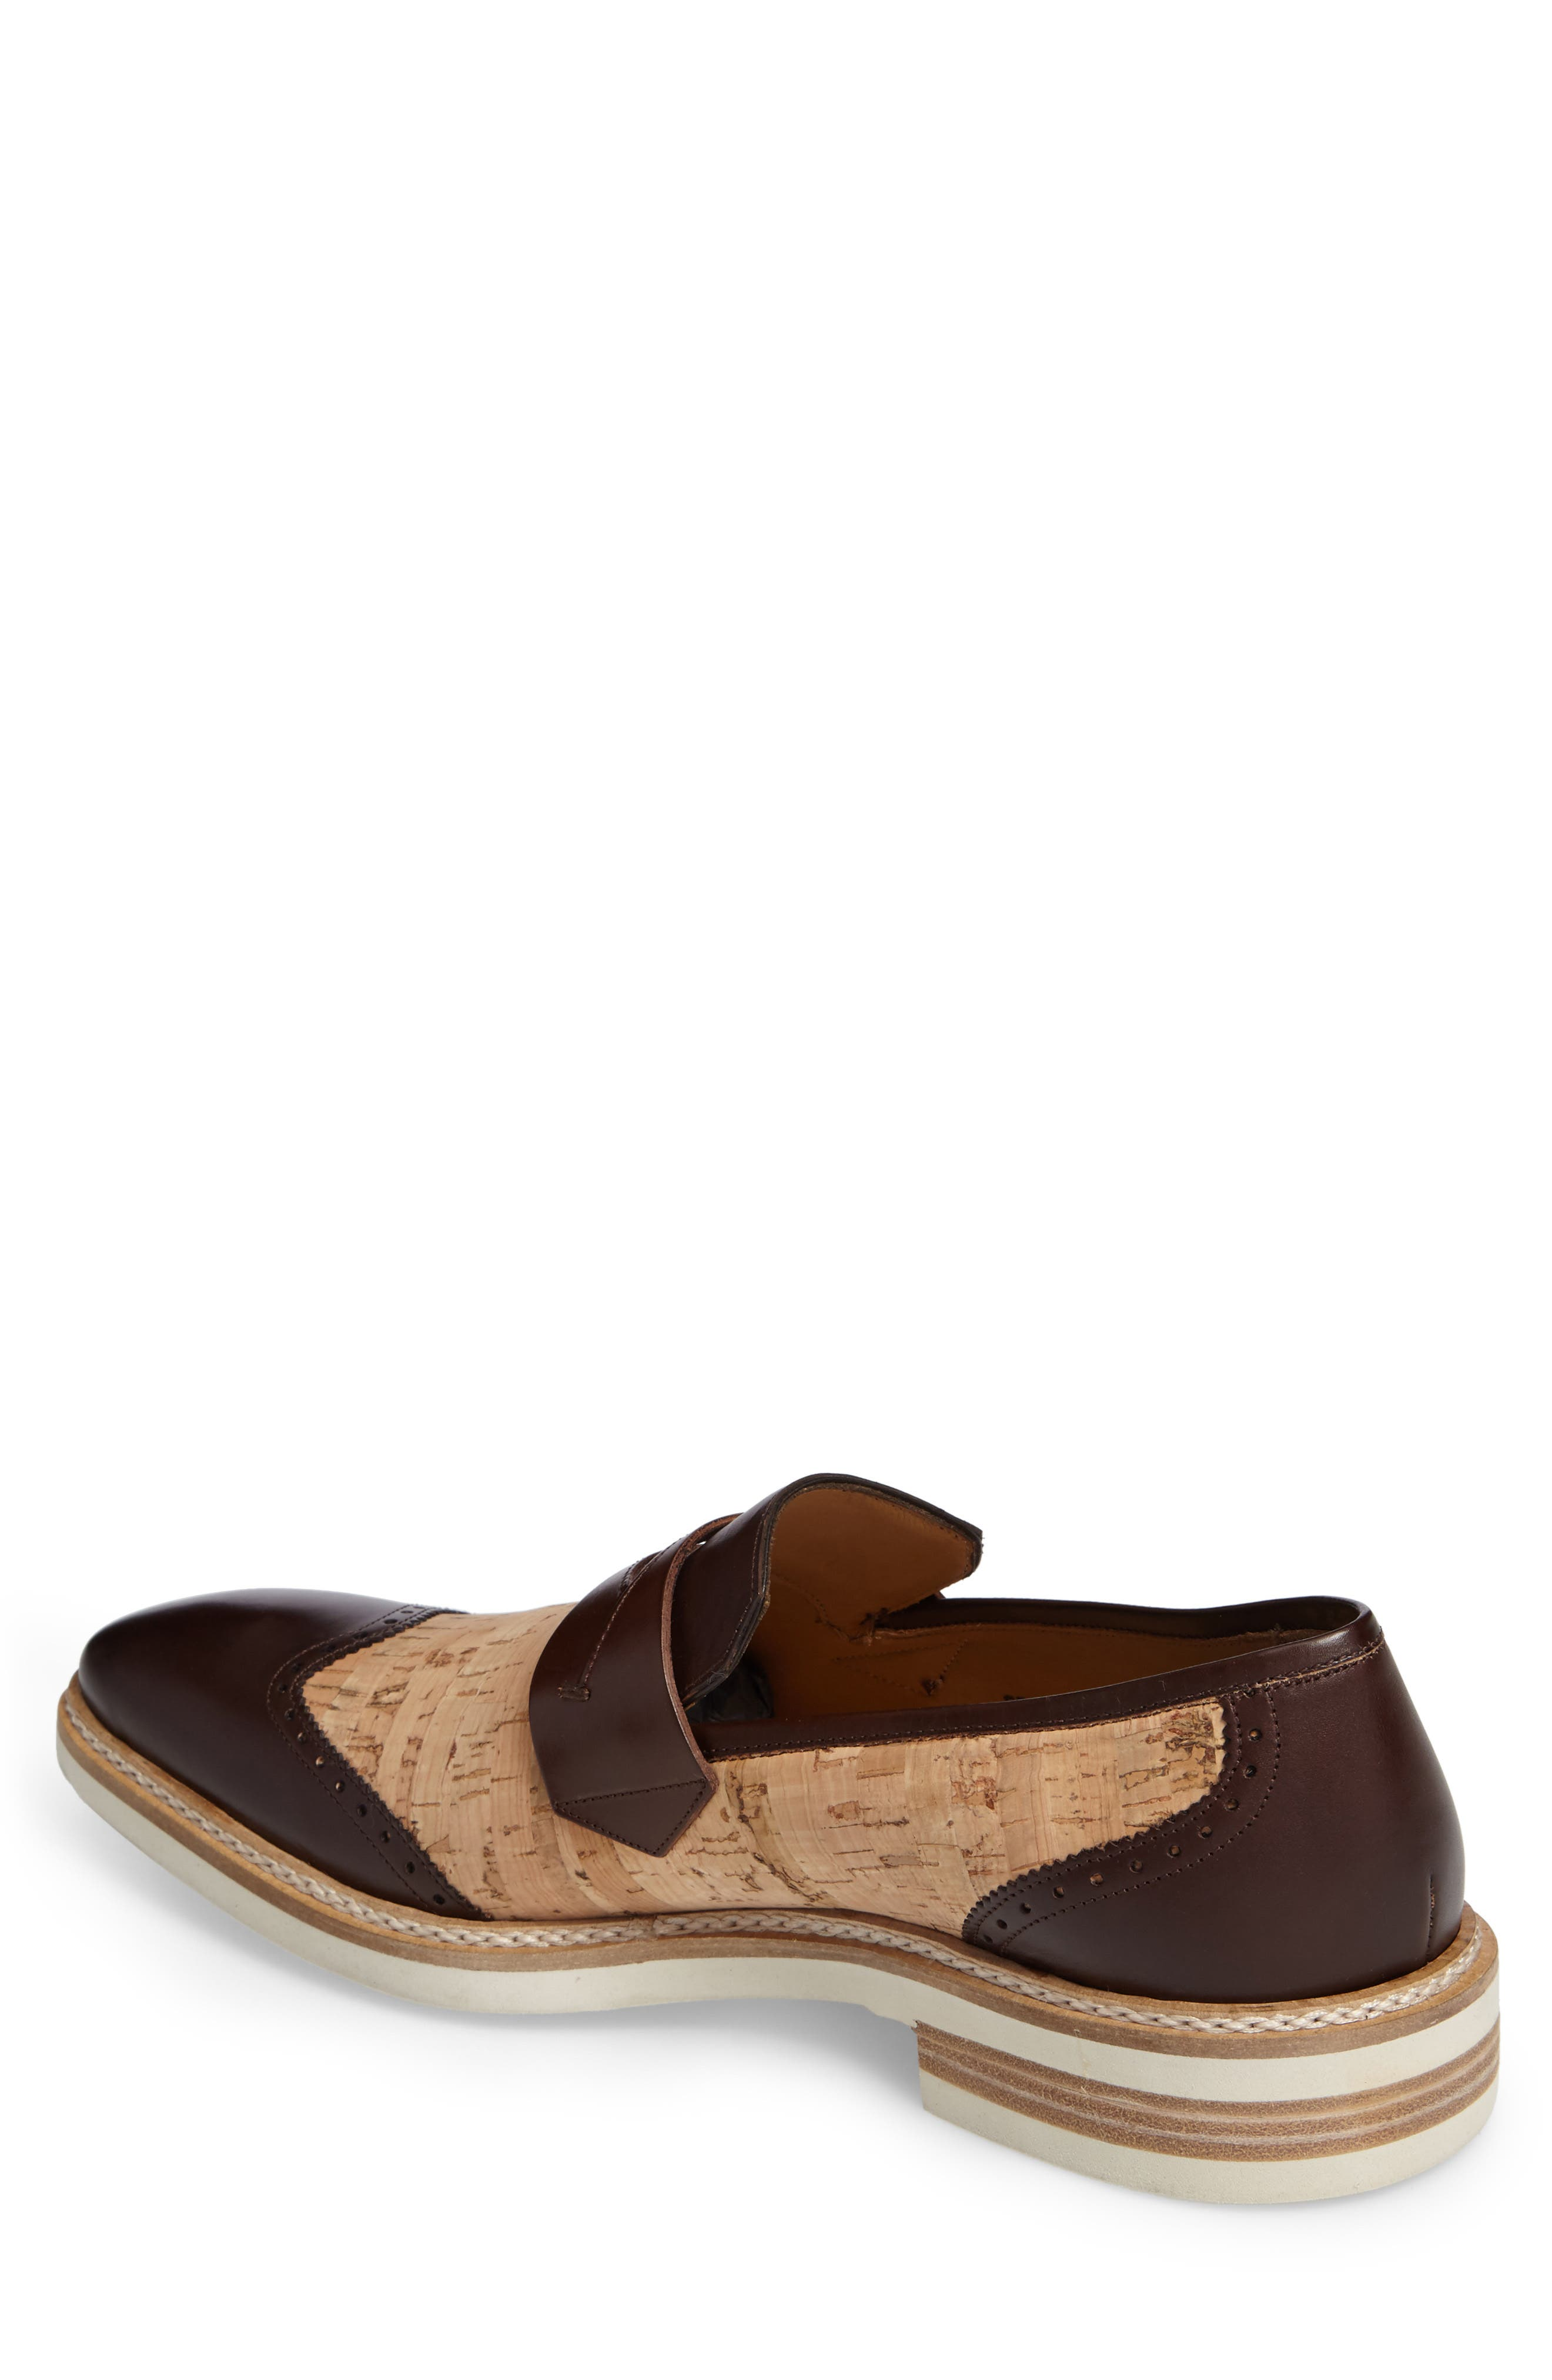 Redi Venetian Loafer,                             Alternate thumbnail 2, color,                             200